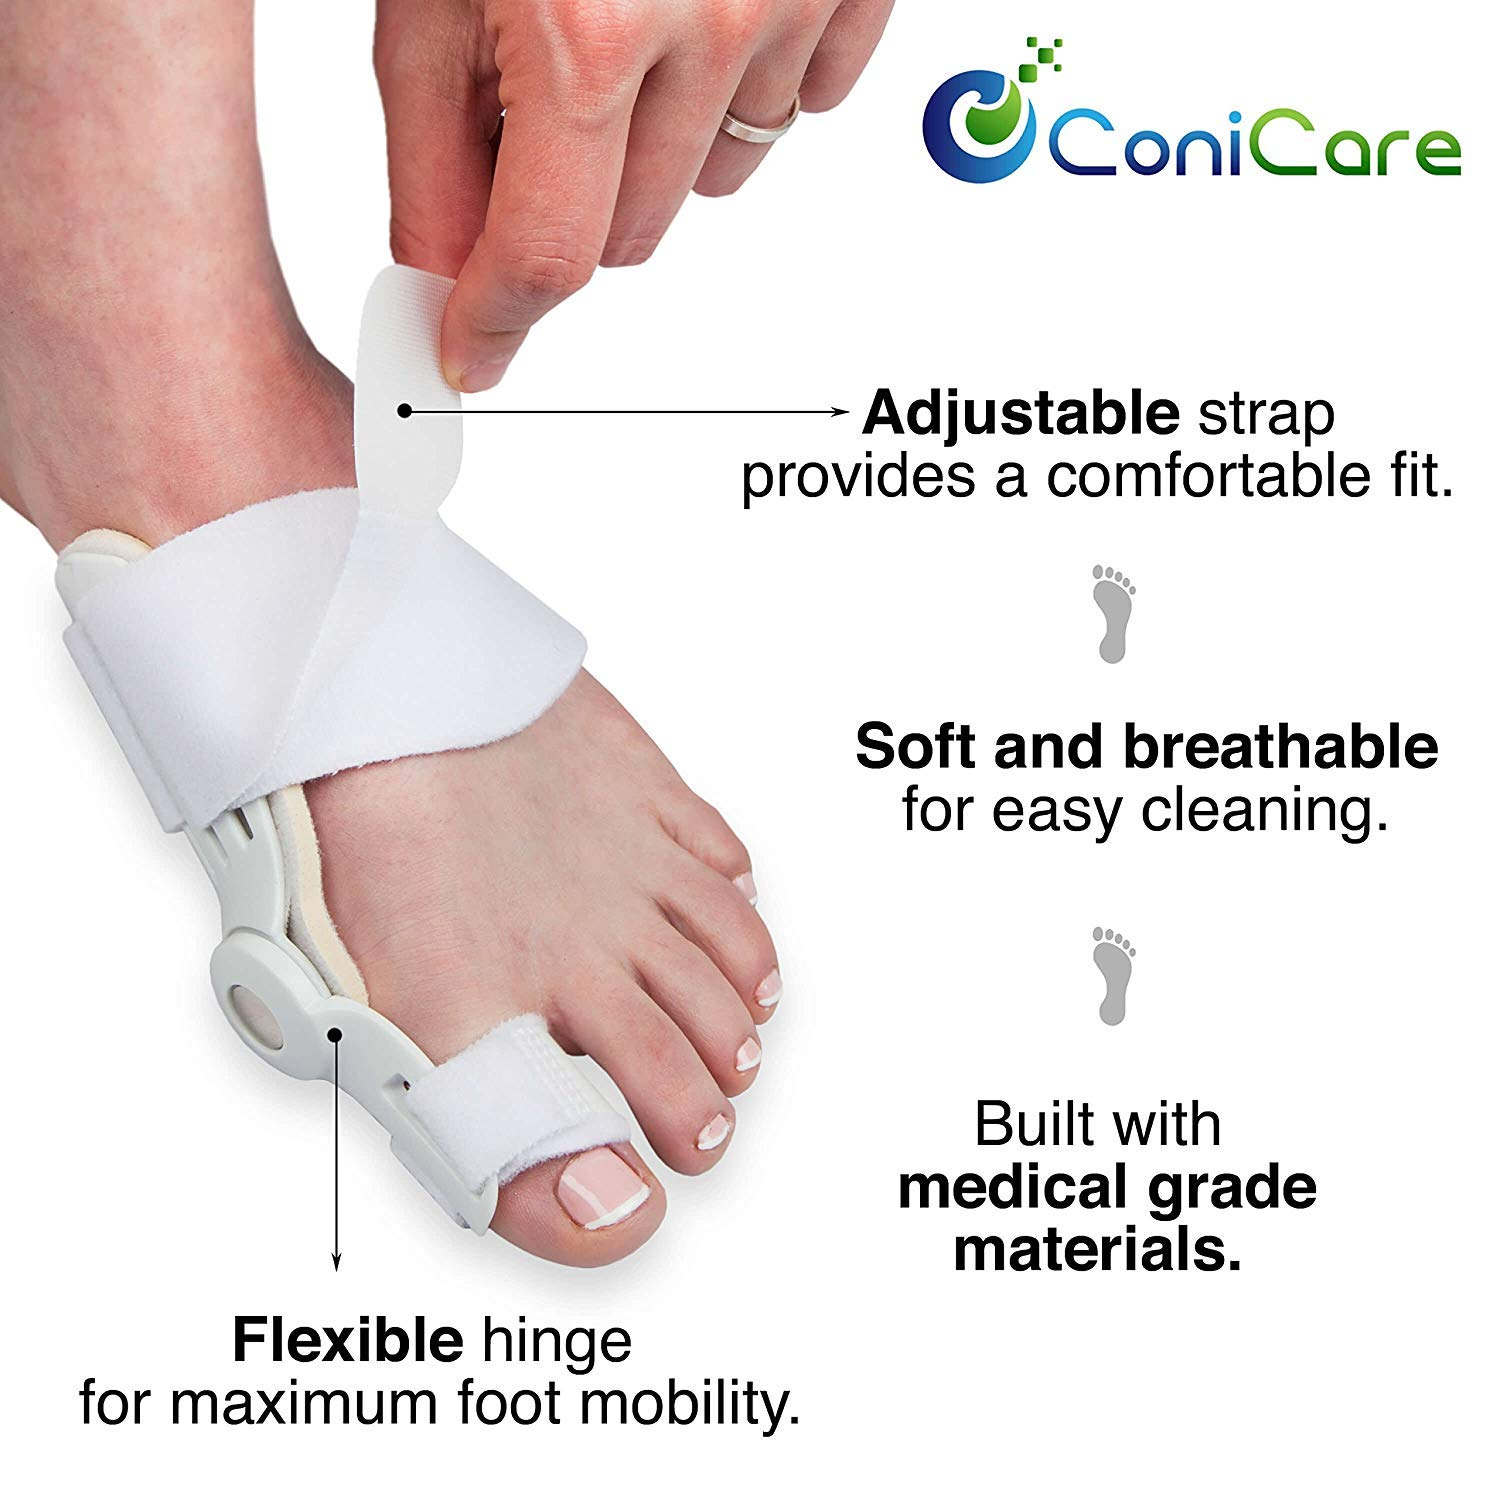 Orthopedic Bunion Corrector Relief And Protector Splint Sleeve 8 Piece Kit - Hallux Valgus Pain Relief, Big Toe Joint, Hammer Toe, Toe Separator Spacer And Big Toe Straightener